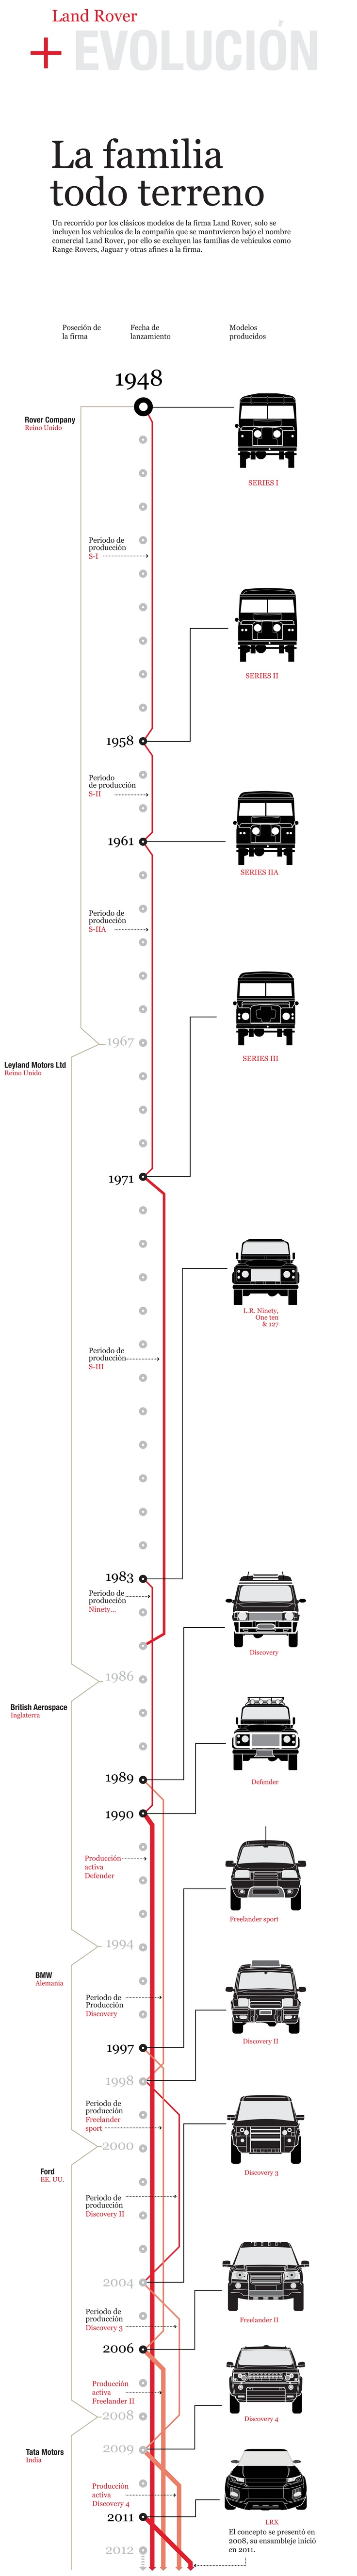 The Land Rover Evolution